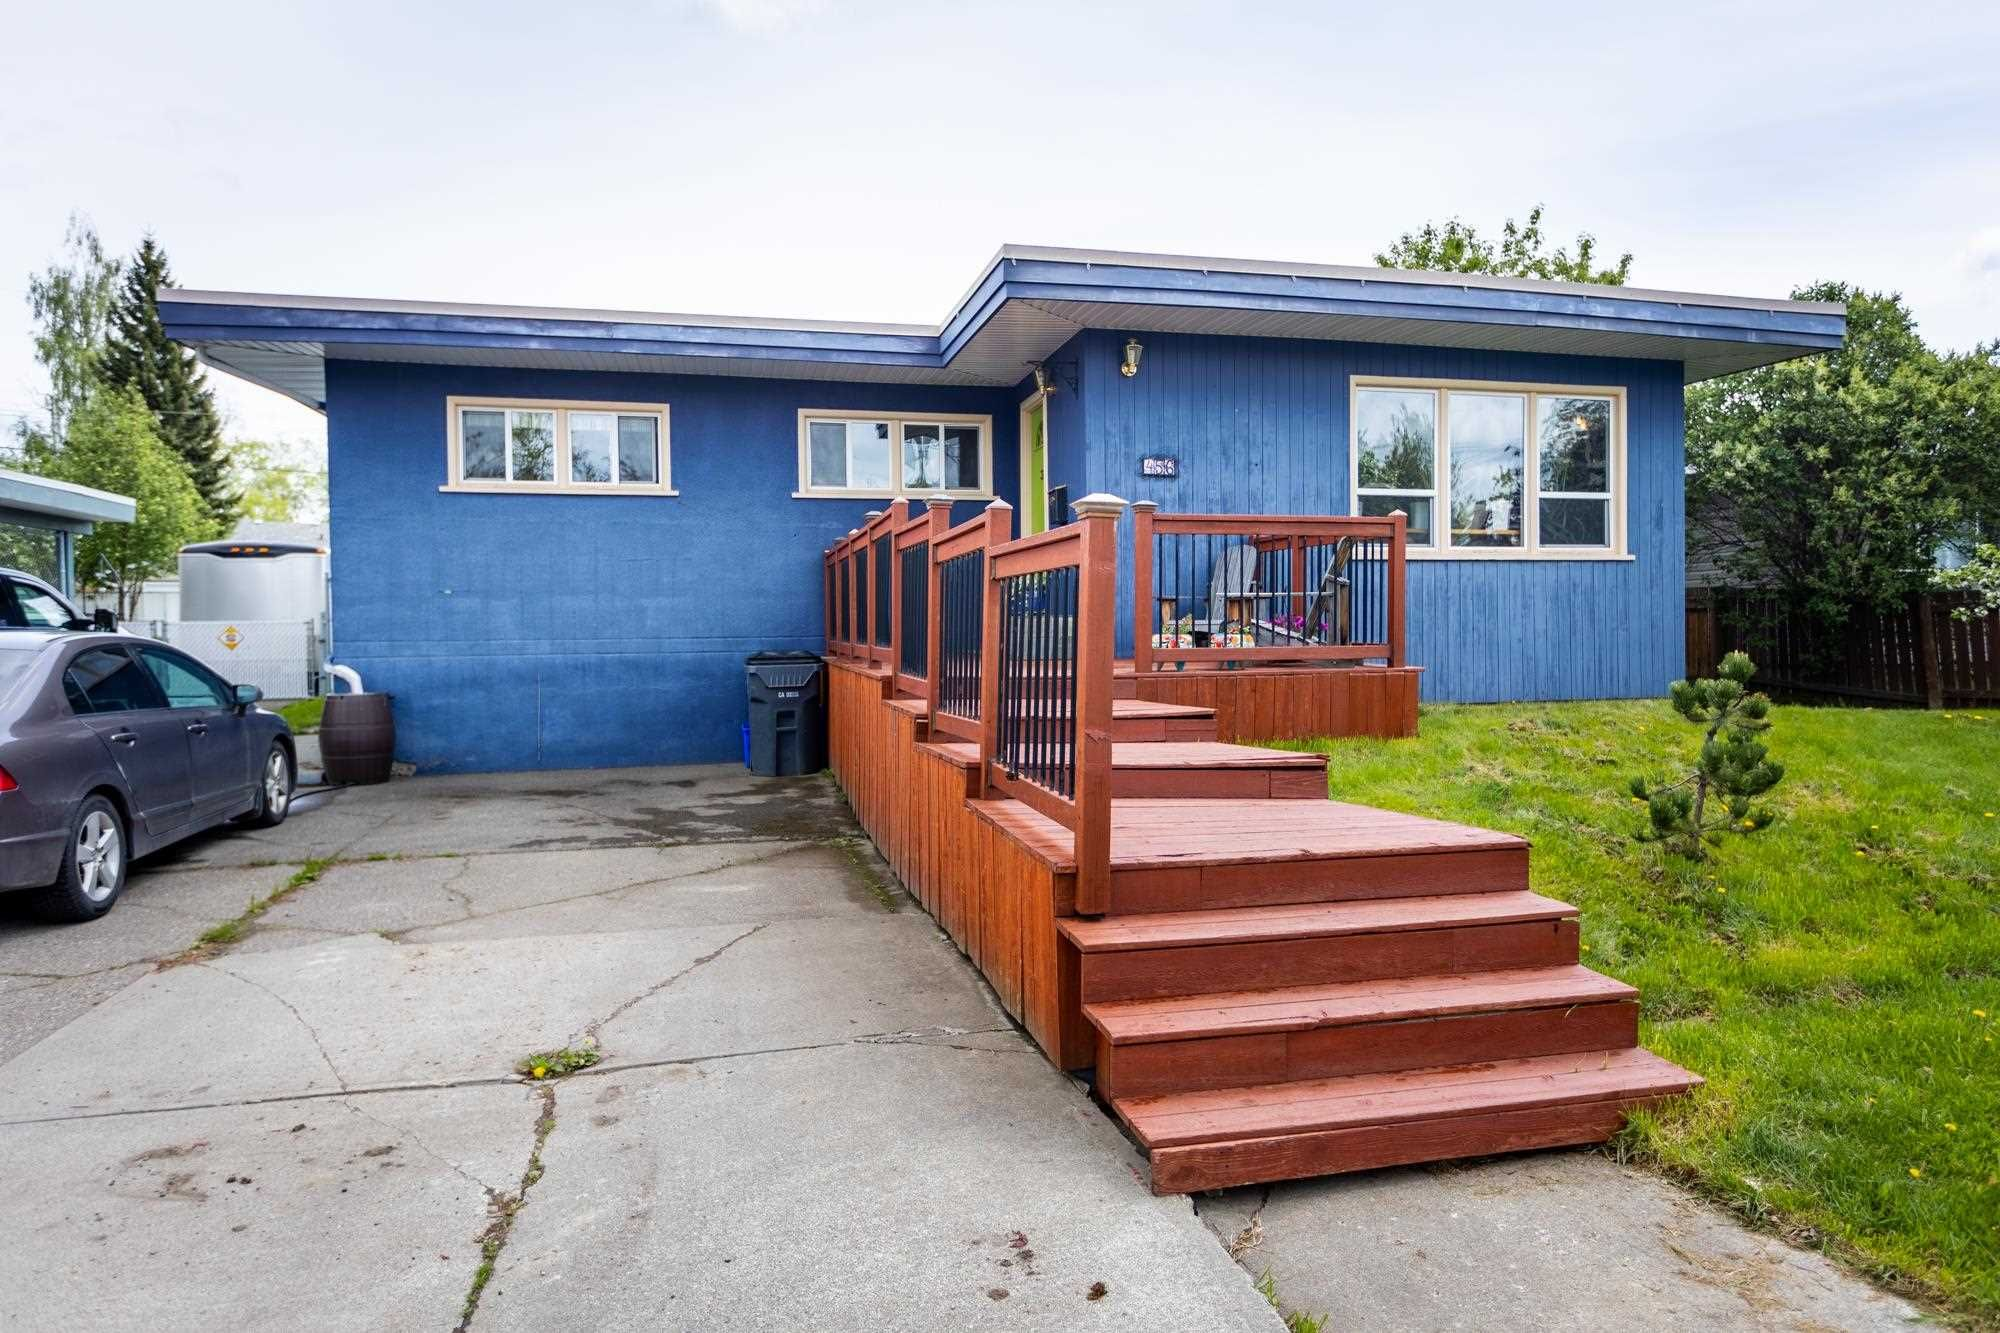 """Main Photo: 456 MELVILLE Avenue in Prince George: Crescents House for sale in """"Crescents"""" (PG City Central (Zone 72))  : MLS®# R2595295"""